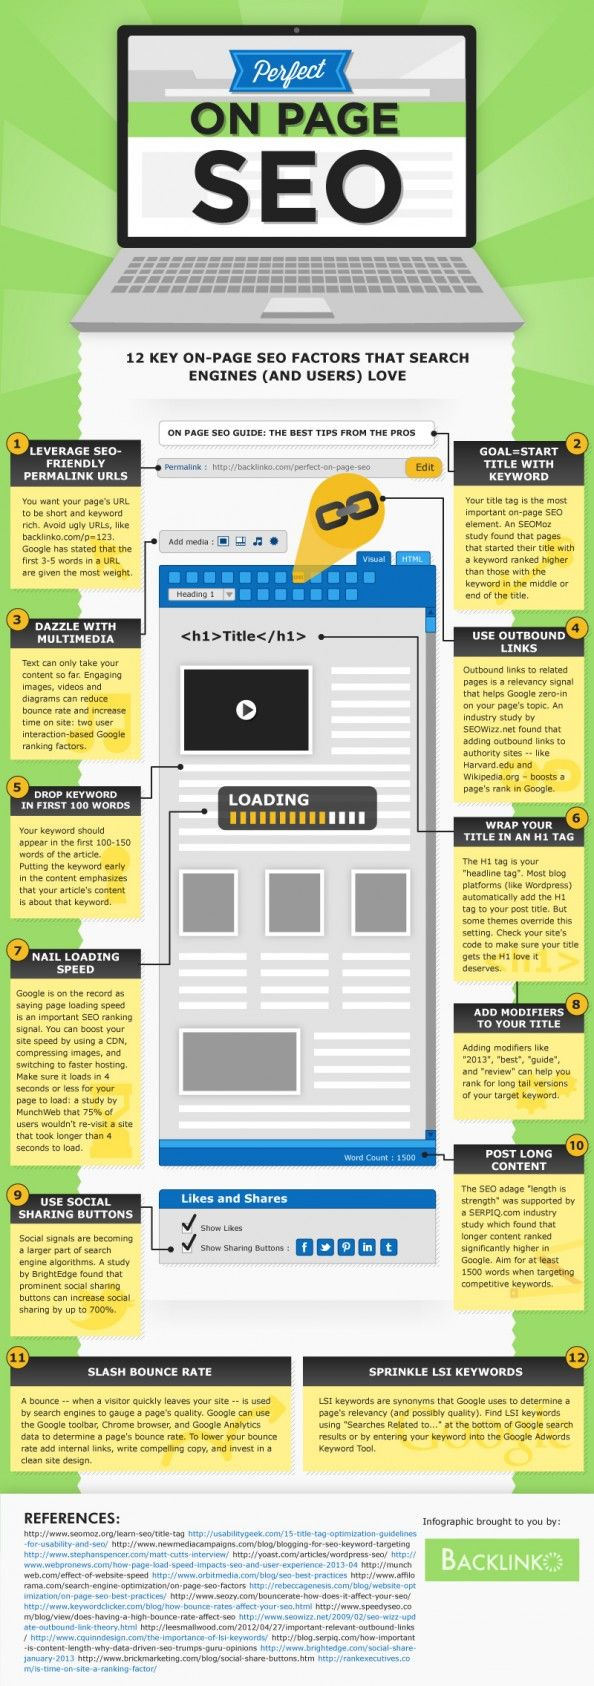 A nice, concise, accurate guide to on-page SEO. I do all of these things when I design a website.